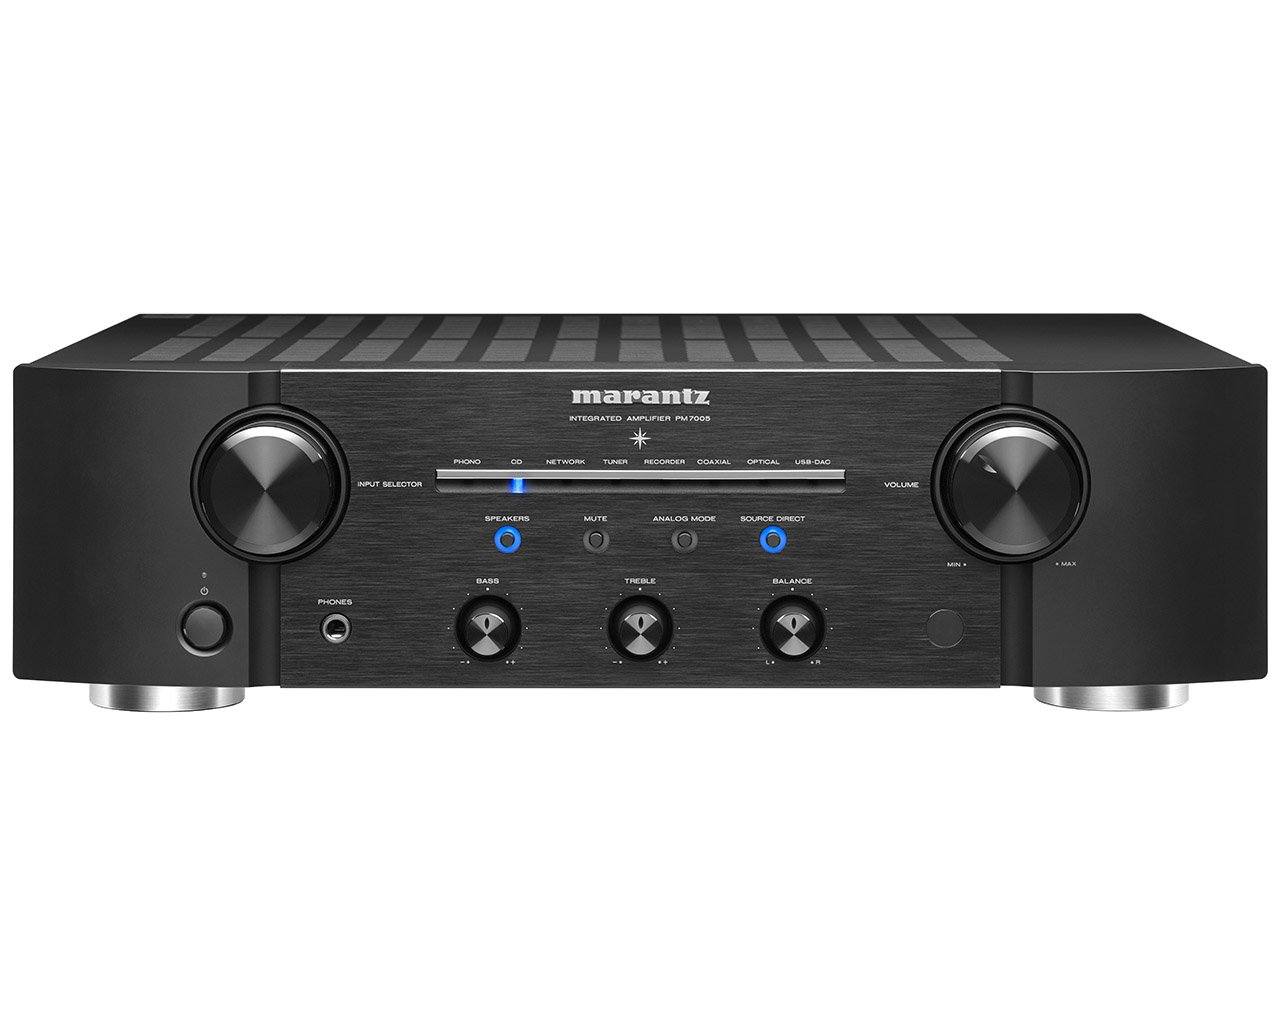 Marantz PM7005 Review – looked as multichannel home theater